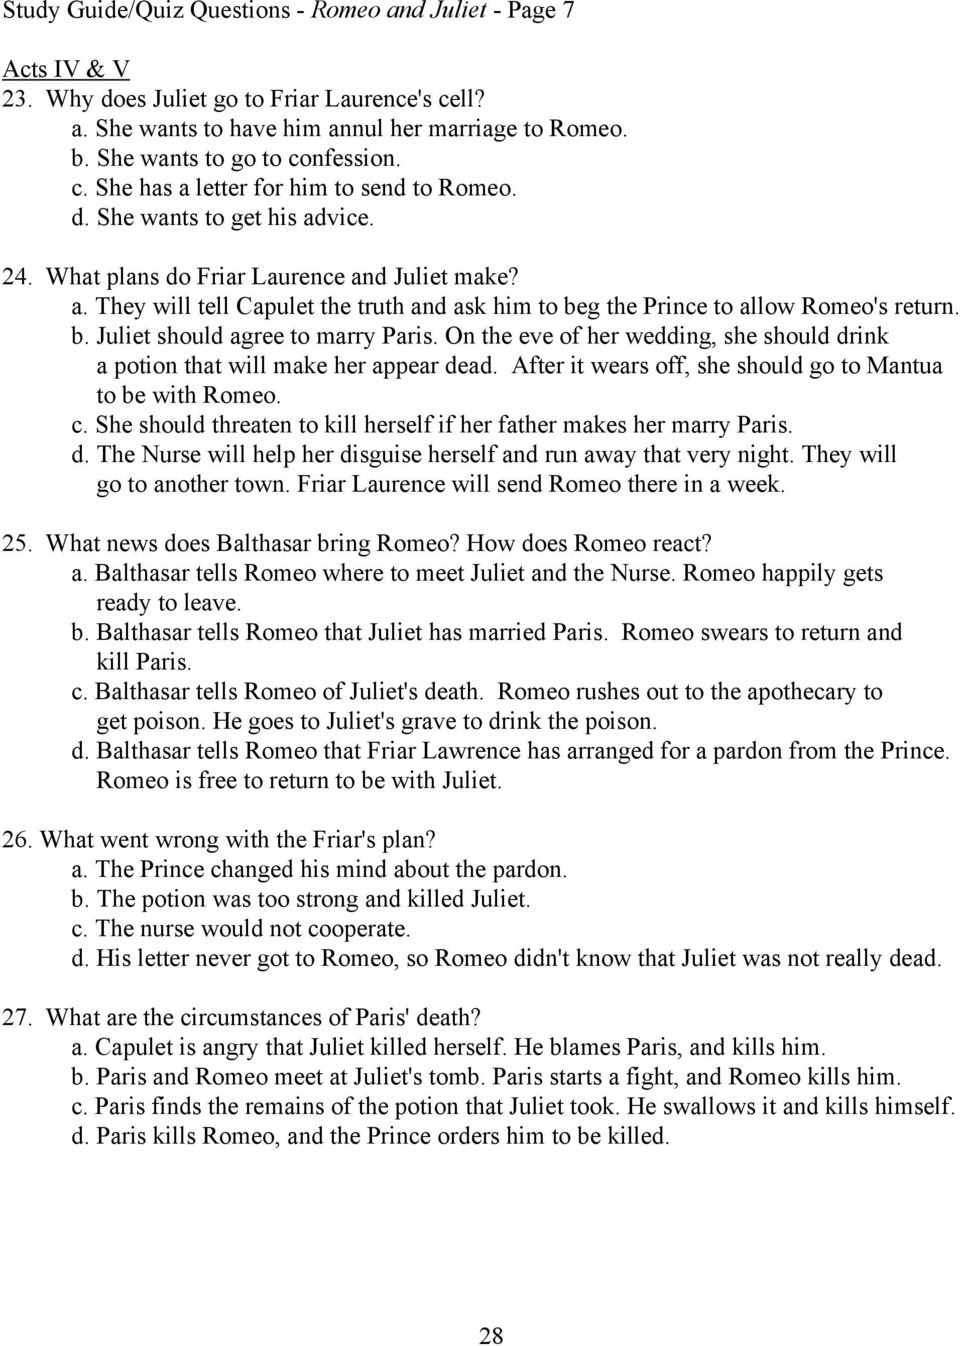 MULTIPLE CHOICE STUDY GUIDE/QUIZ QUESTIONS - Romeo and